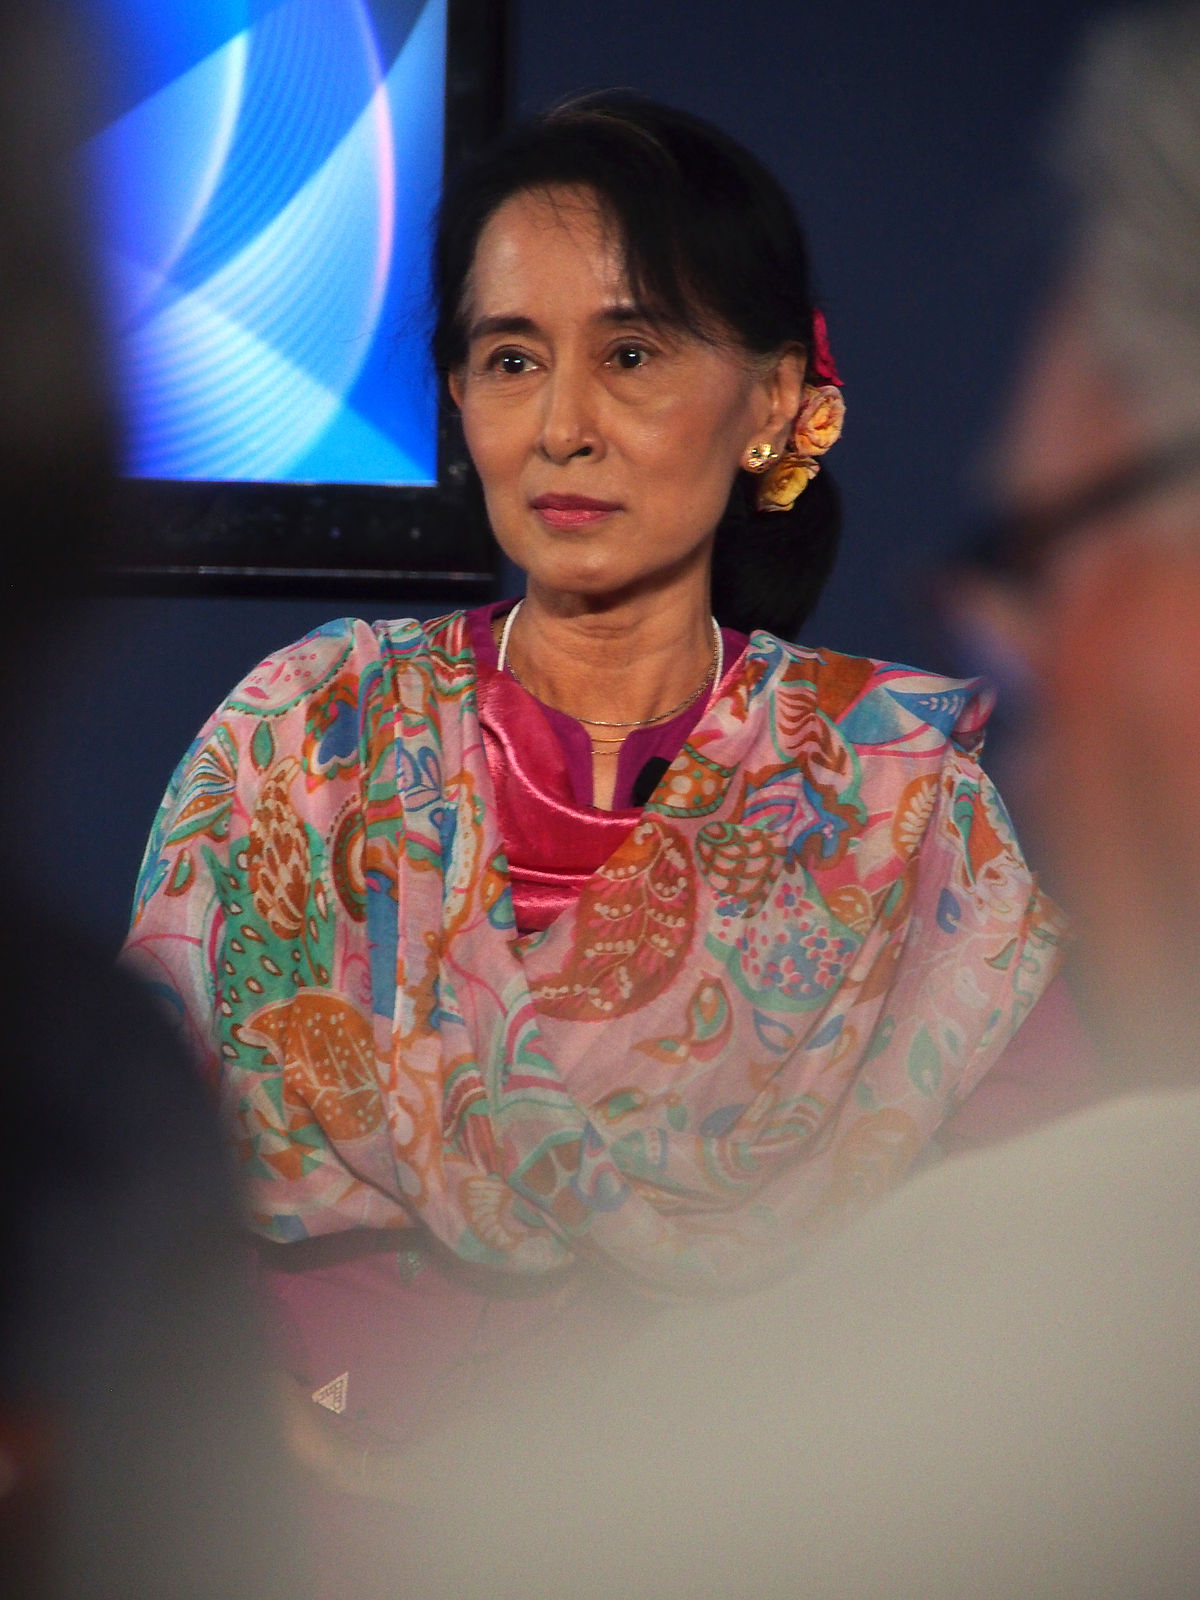 short essay about aung san suu kyi Biography, leadership lessons and quotes from aung san suu kyi, burmese politician known as an advocate for the pro-democratic movement in burma.